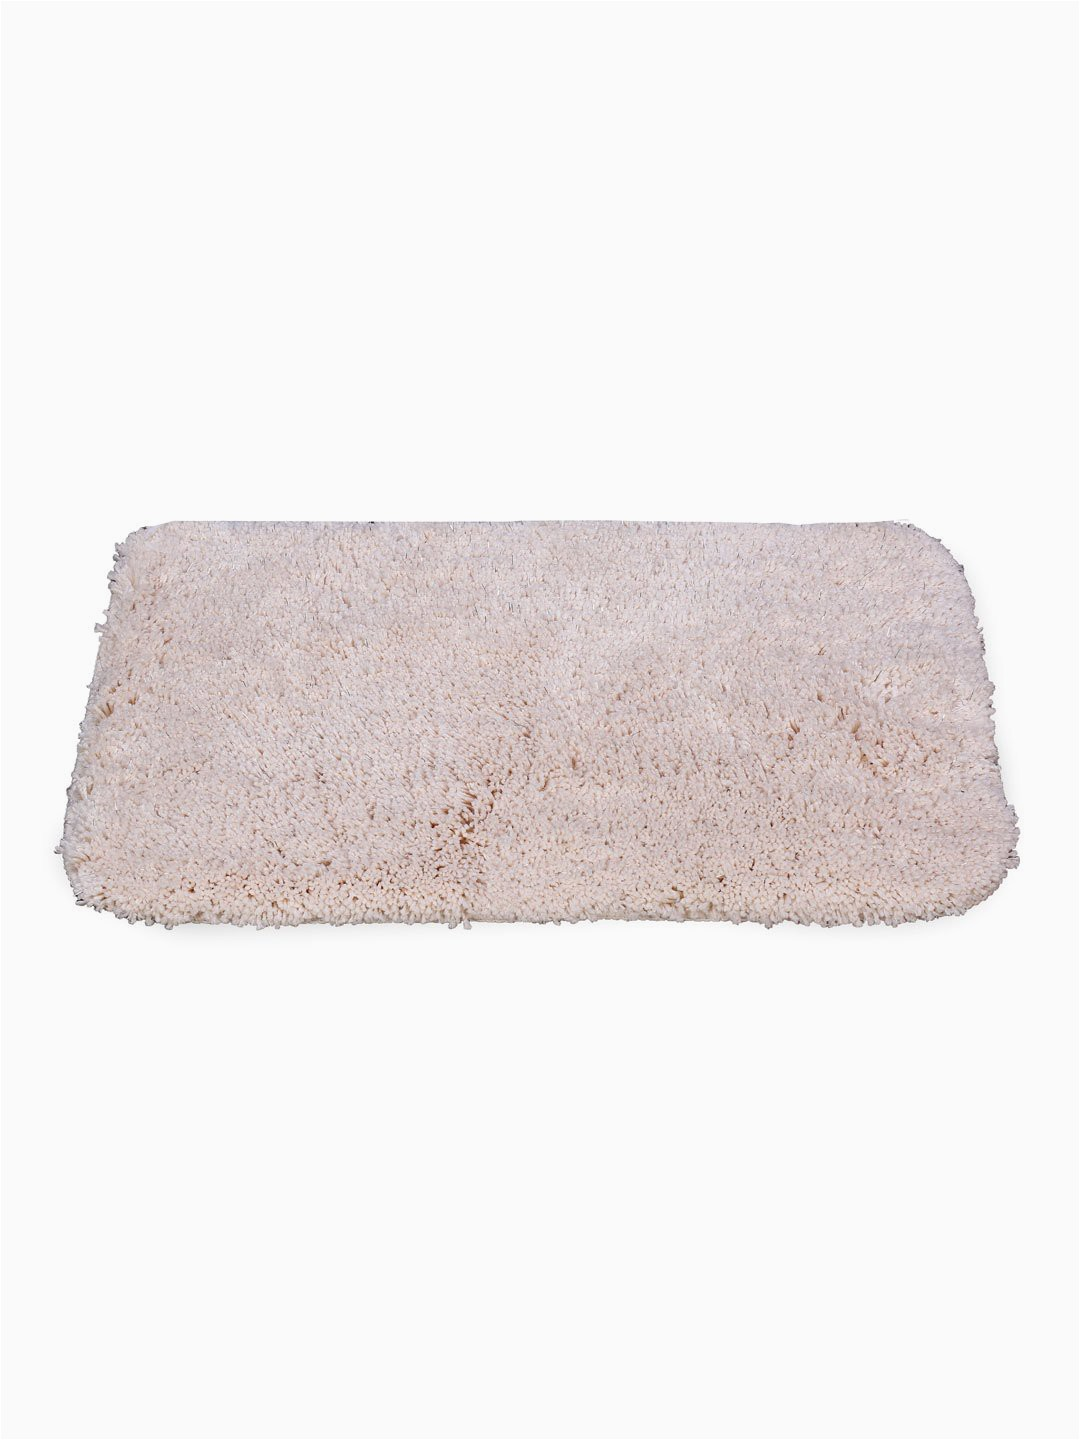 lurex 40 cm x 60 cm bath mat brown hbm12imstecr